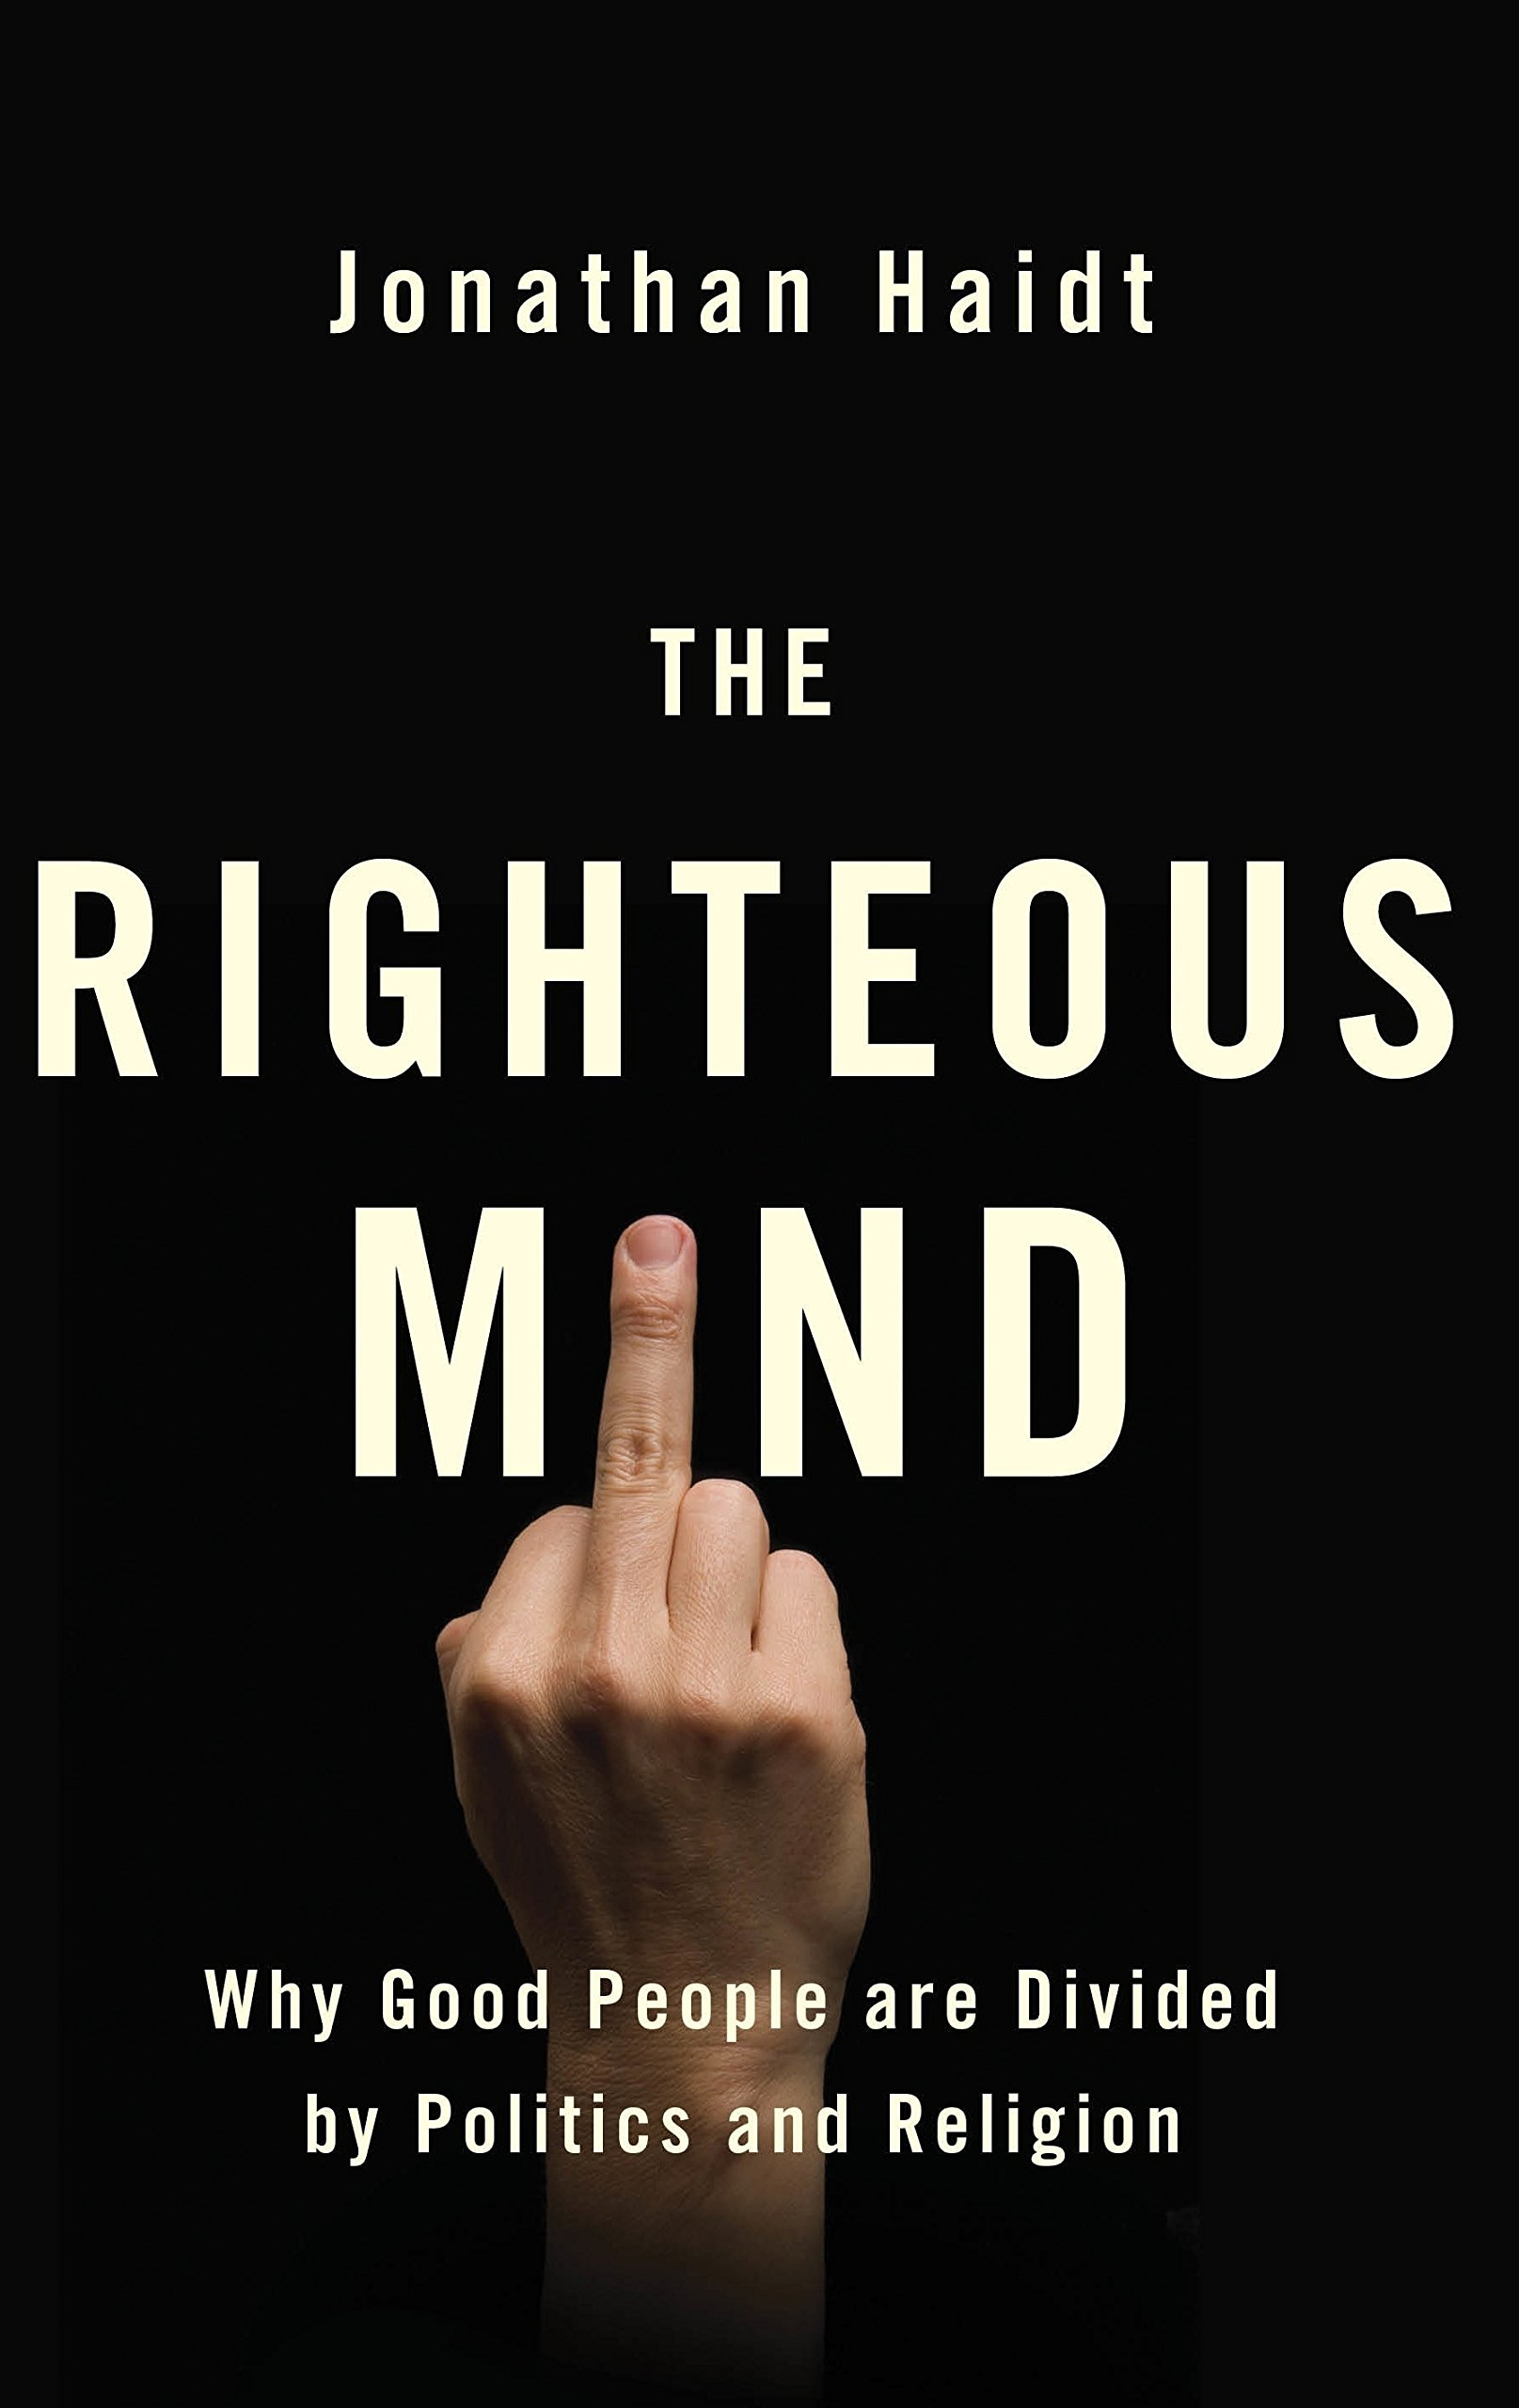 Buy The Righteous Mind: Why Good People are Divided by Politics and Religion  Book Online at Low Prices in India | The Righteous Mind: Why Good People  are ...